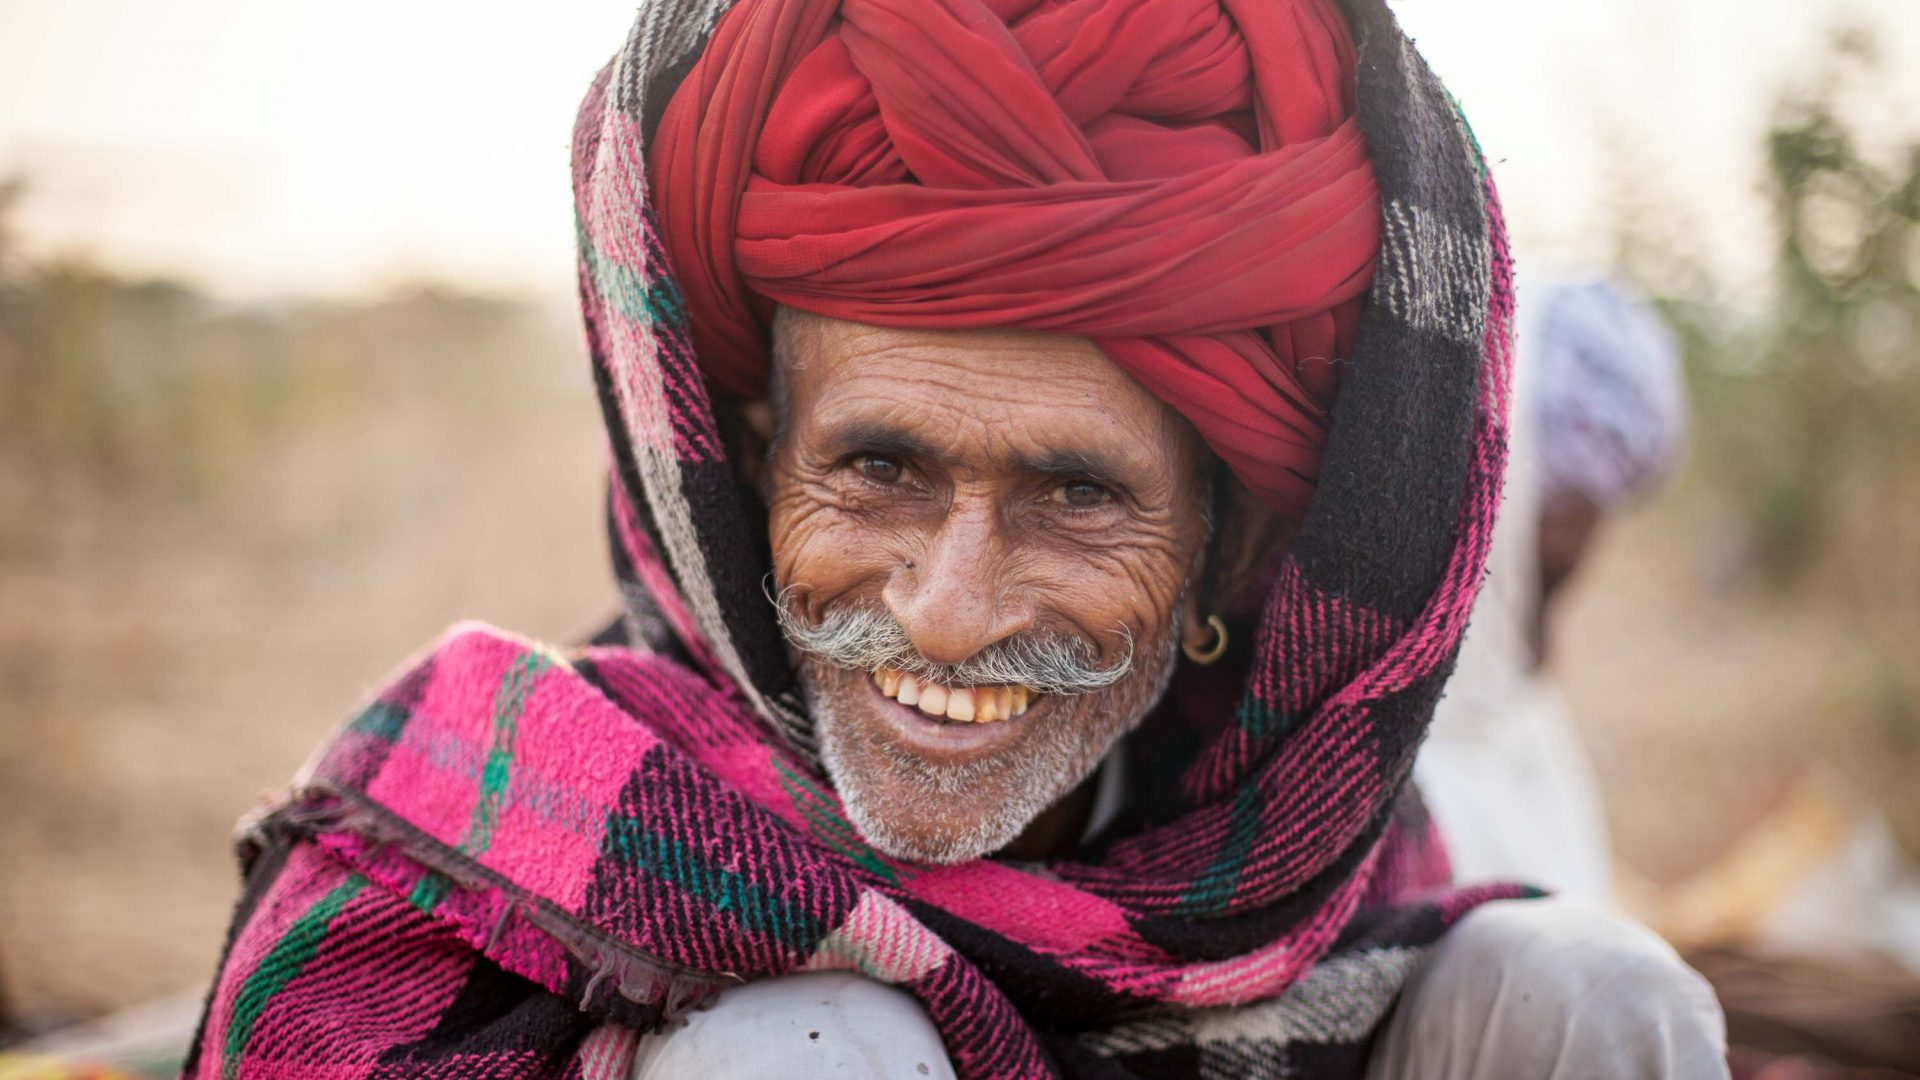 A portrait of a herder at Pushkar Camel Fair.